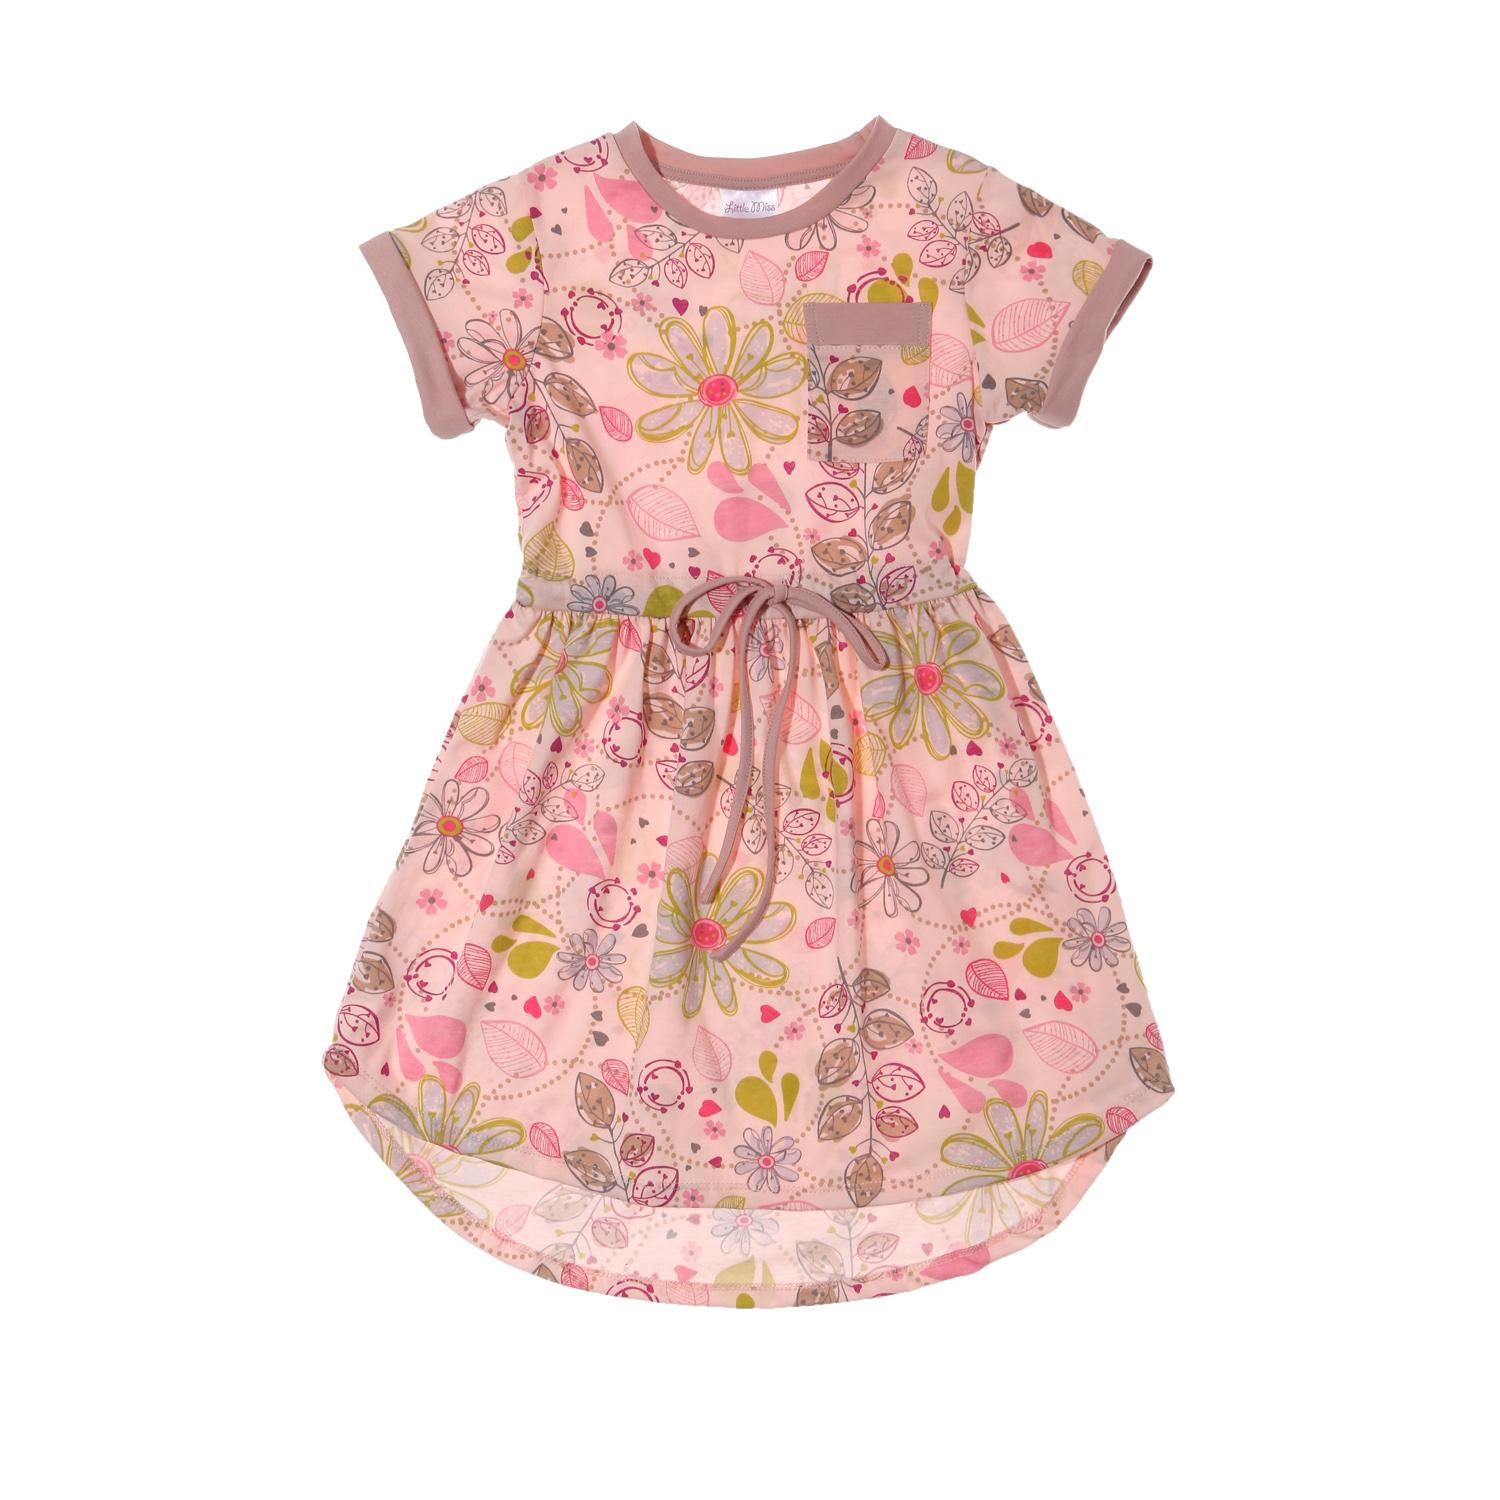 0125810dd7cf Girls Dresses for sale - Baby Dresses for Girls online brands ...